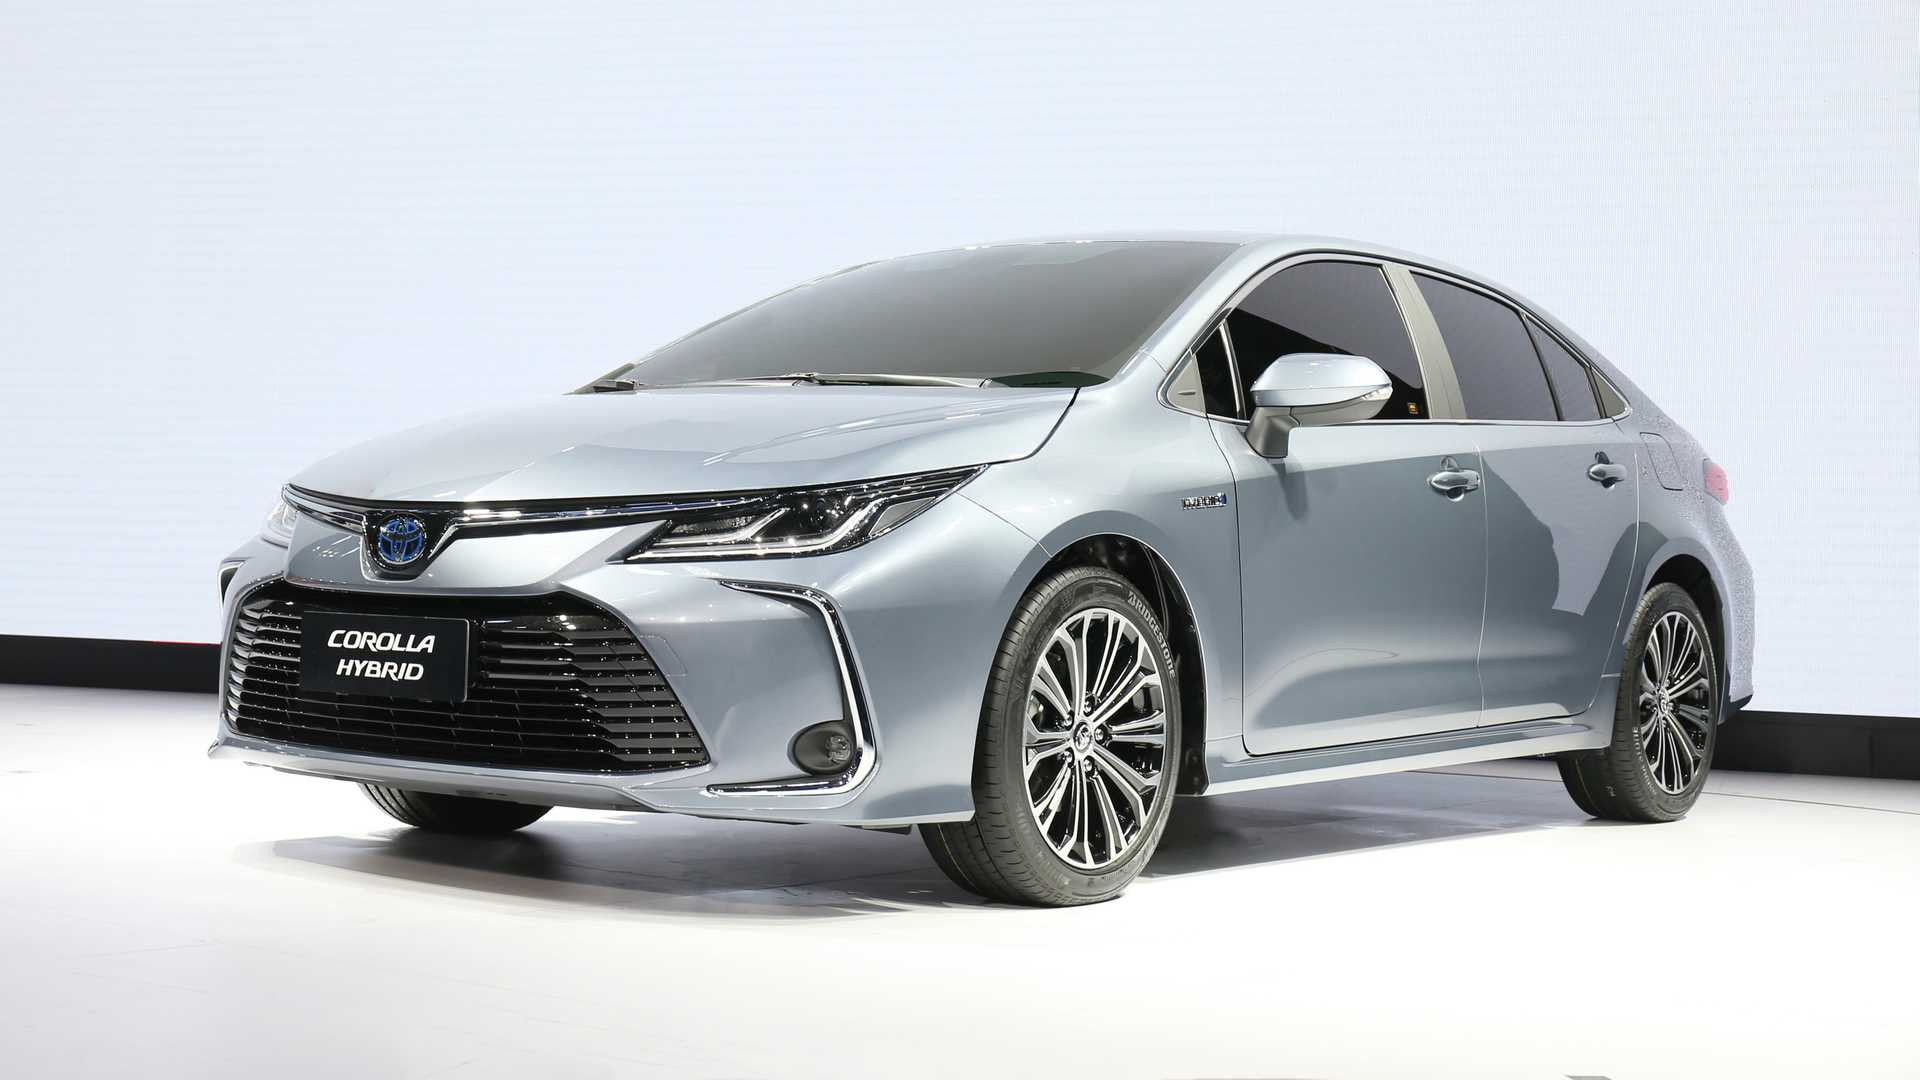 68 The Best 2020 Toyota Corolla Review And Release Date